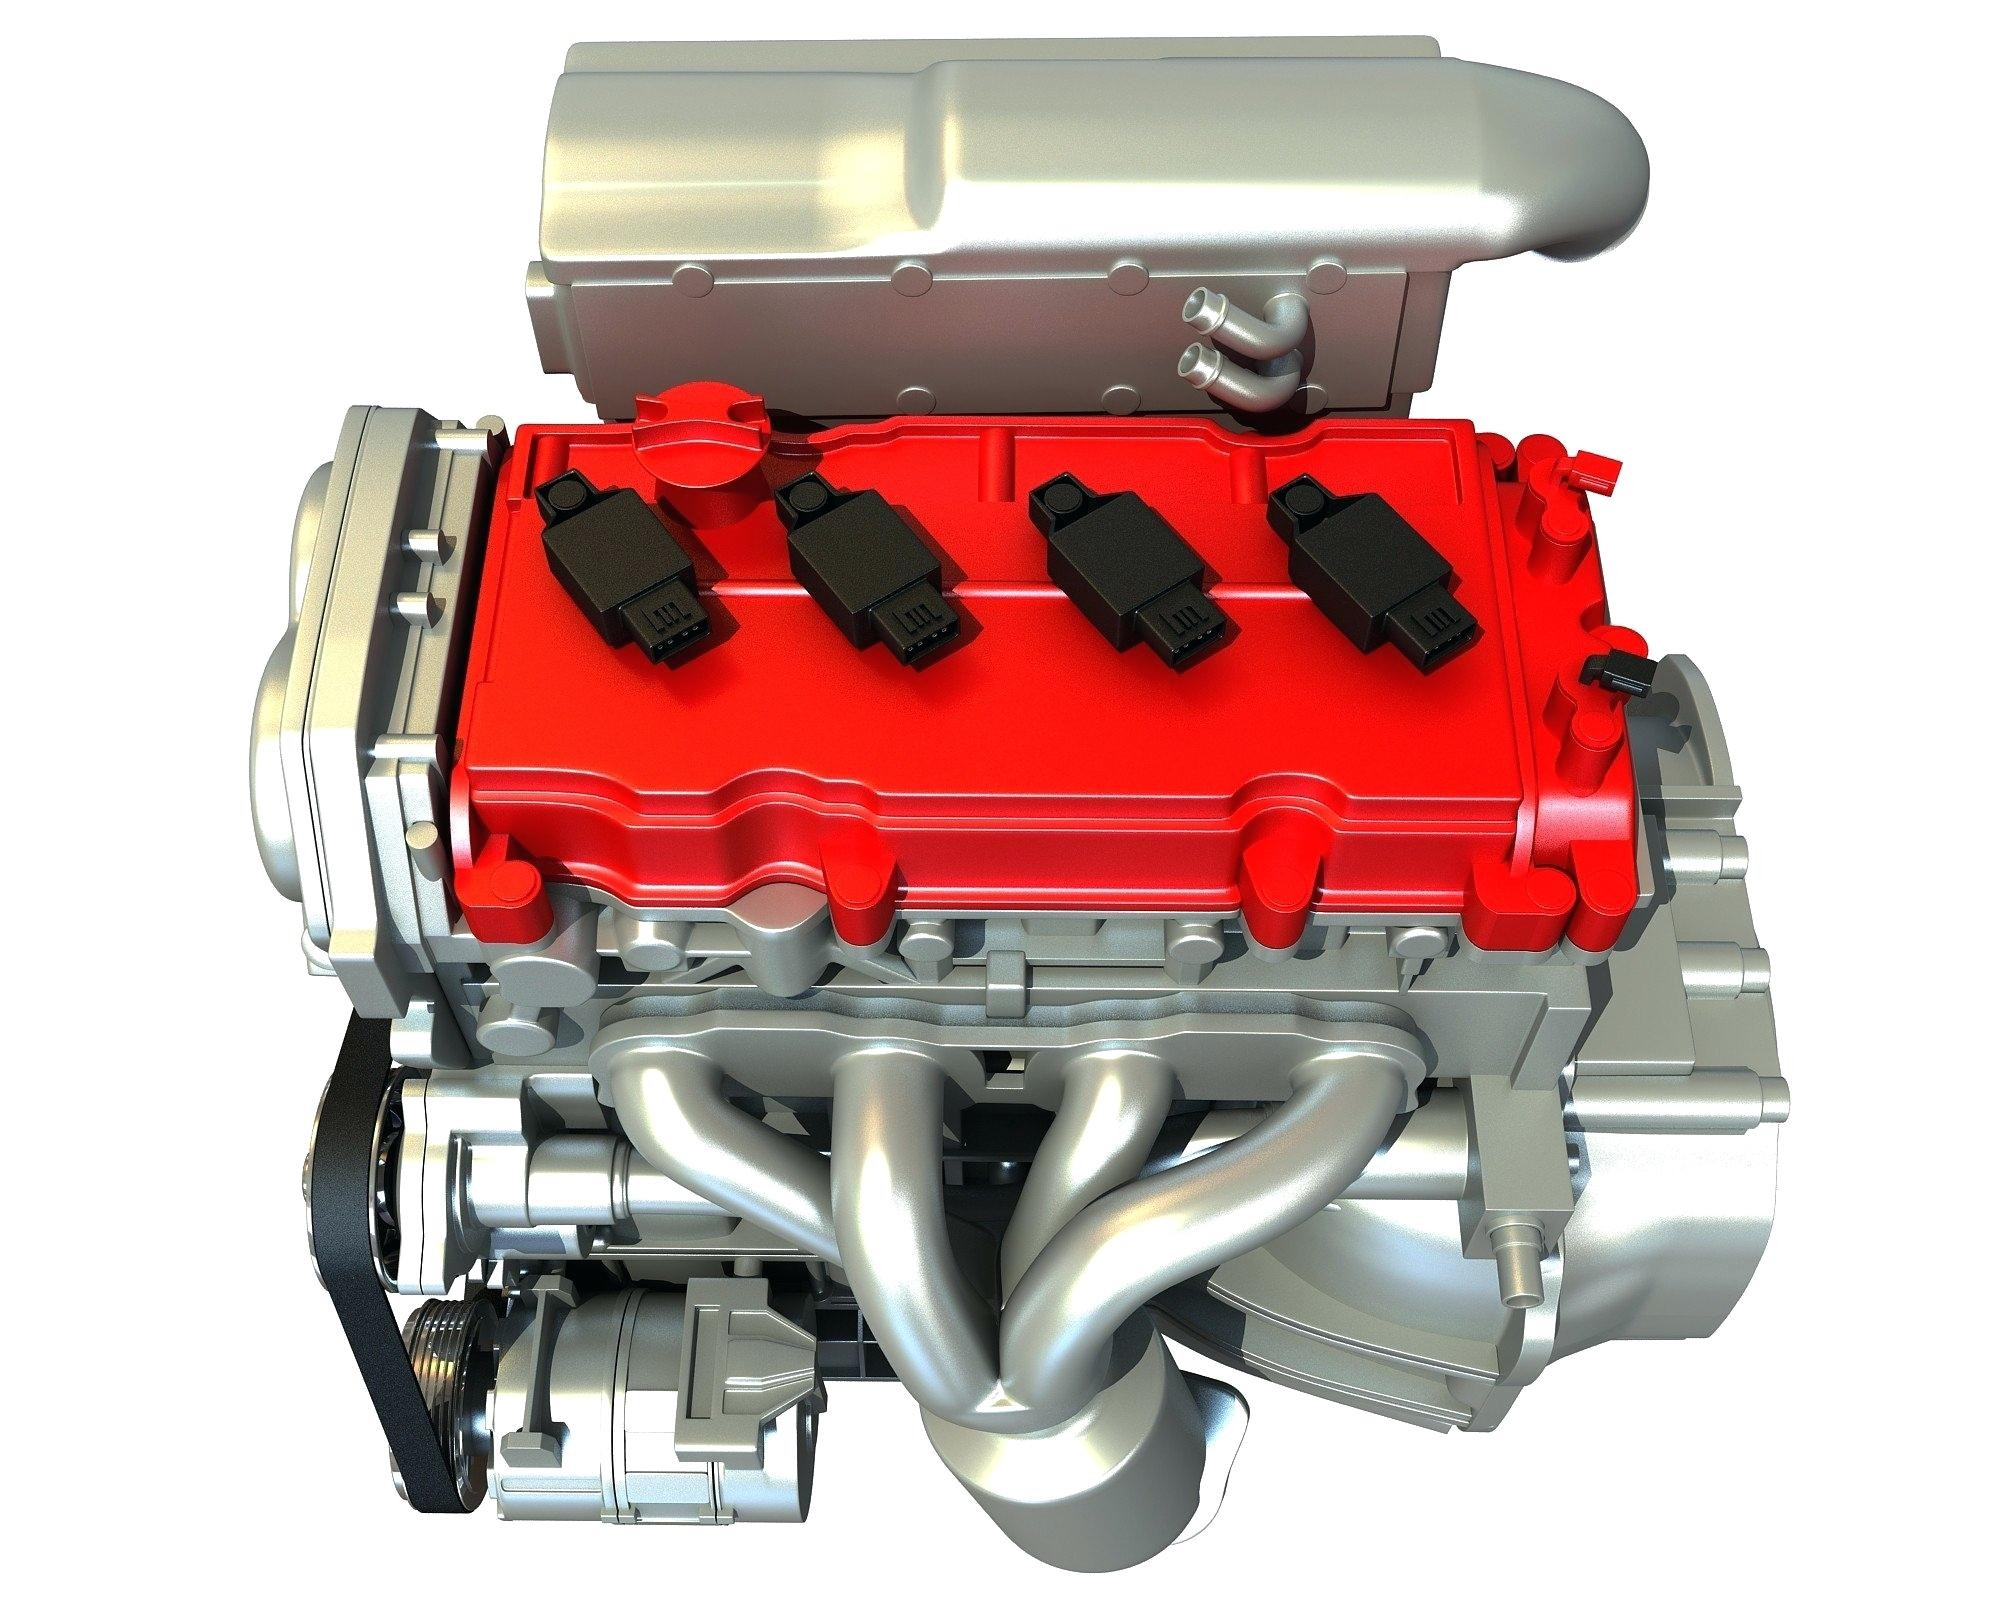 99 toyota Camry Engine Diagram 4 Cylinder Diesel Engine Diagram Horse Car Wiring Library Expansion Of 99 toyota Camry Engine Diagram